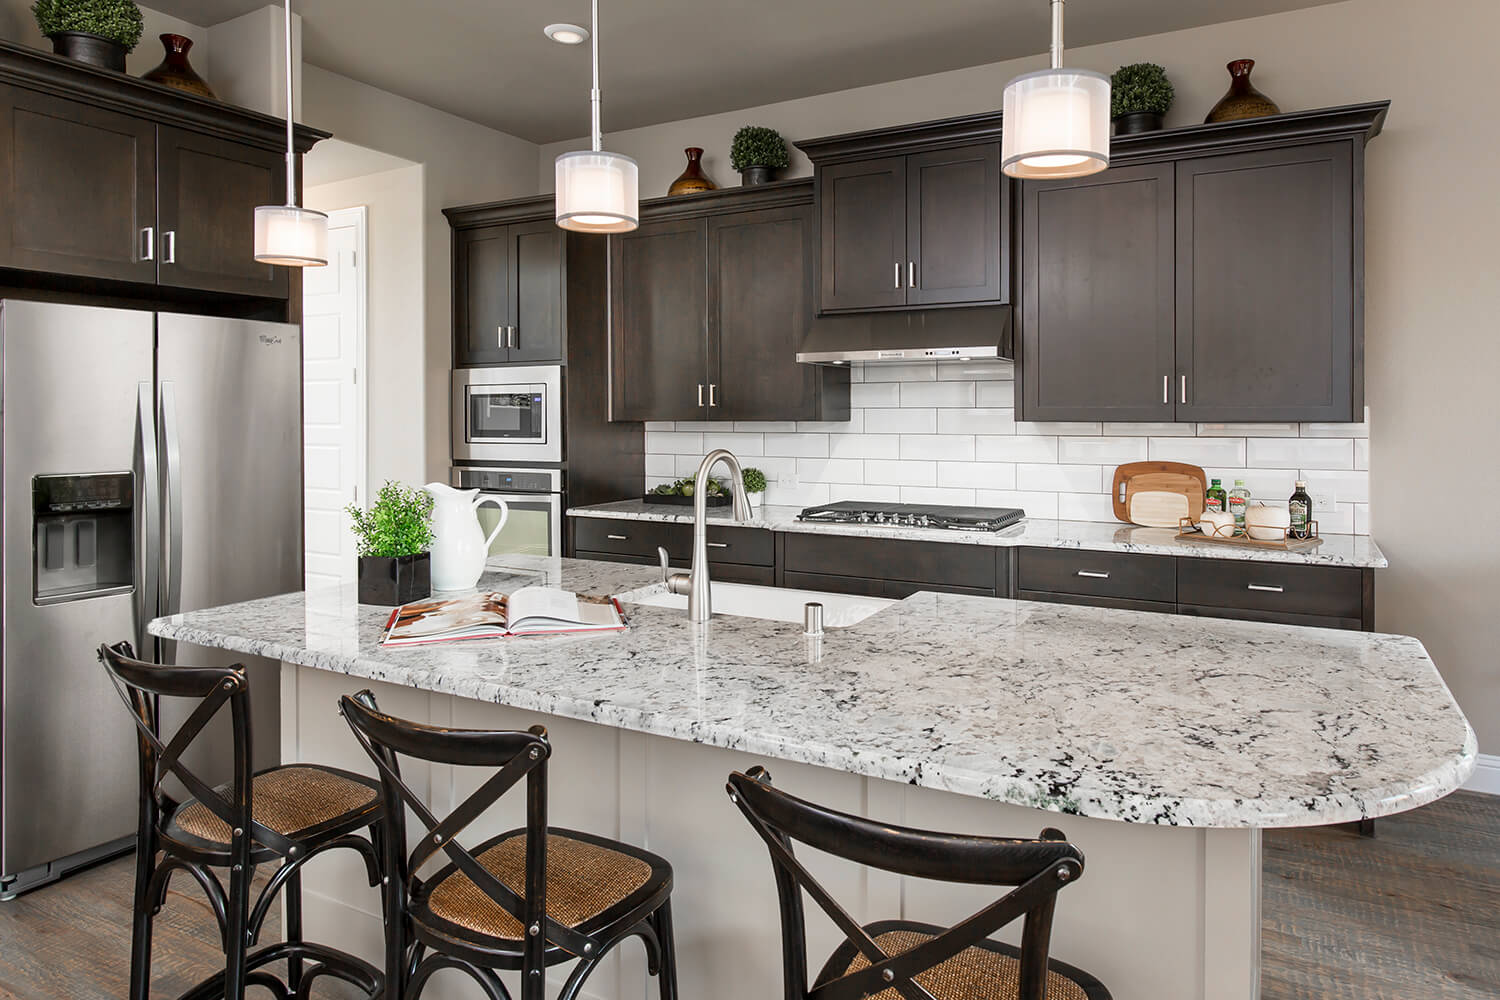 Kitchen - The Navarro Mills (3218 Plan)